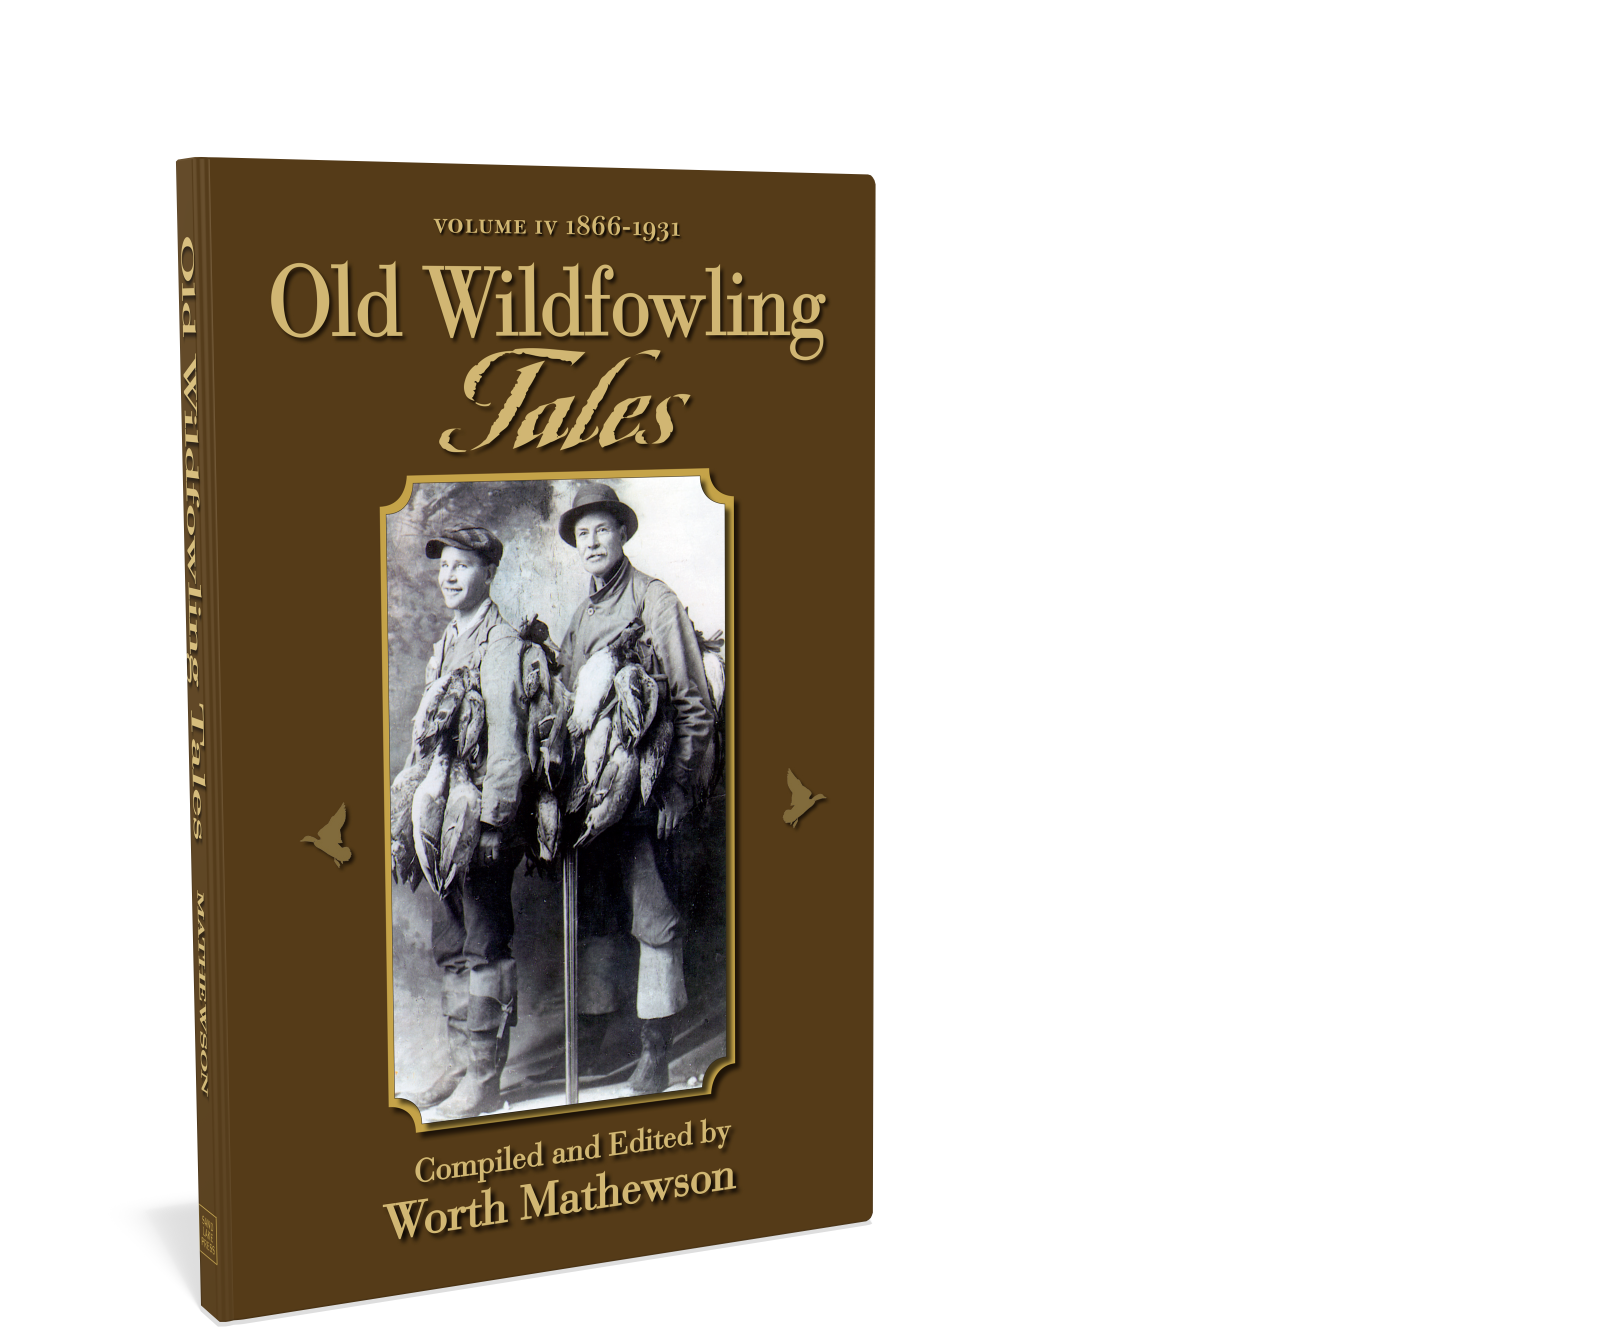 Old Wildfowling Tales IV: Worth Mathewson Starbooks